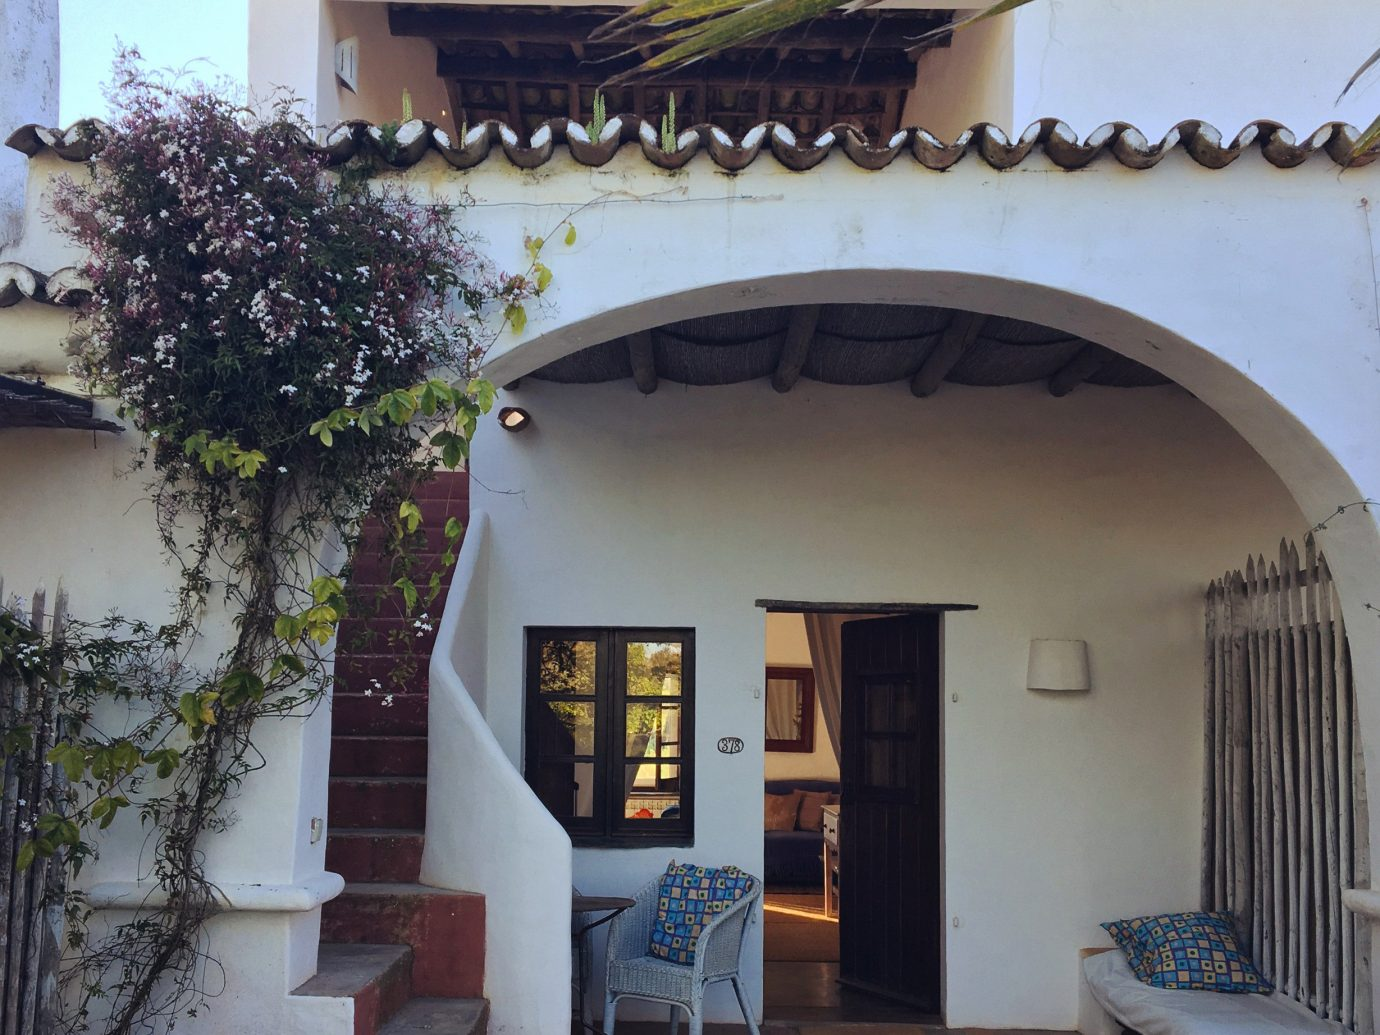 Hotels property outdoor house home real estate facade building hacienda Villa estate Courtyard window outdoor structure apartment old furniture stone arch several